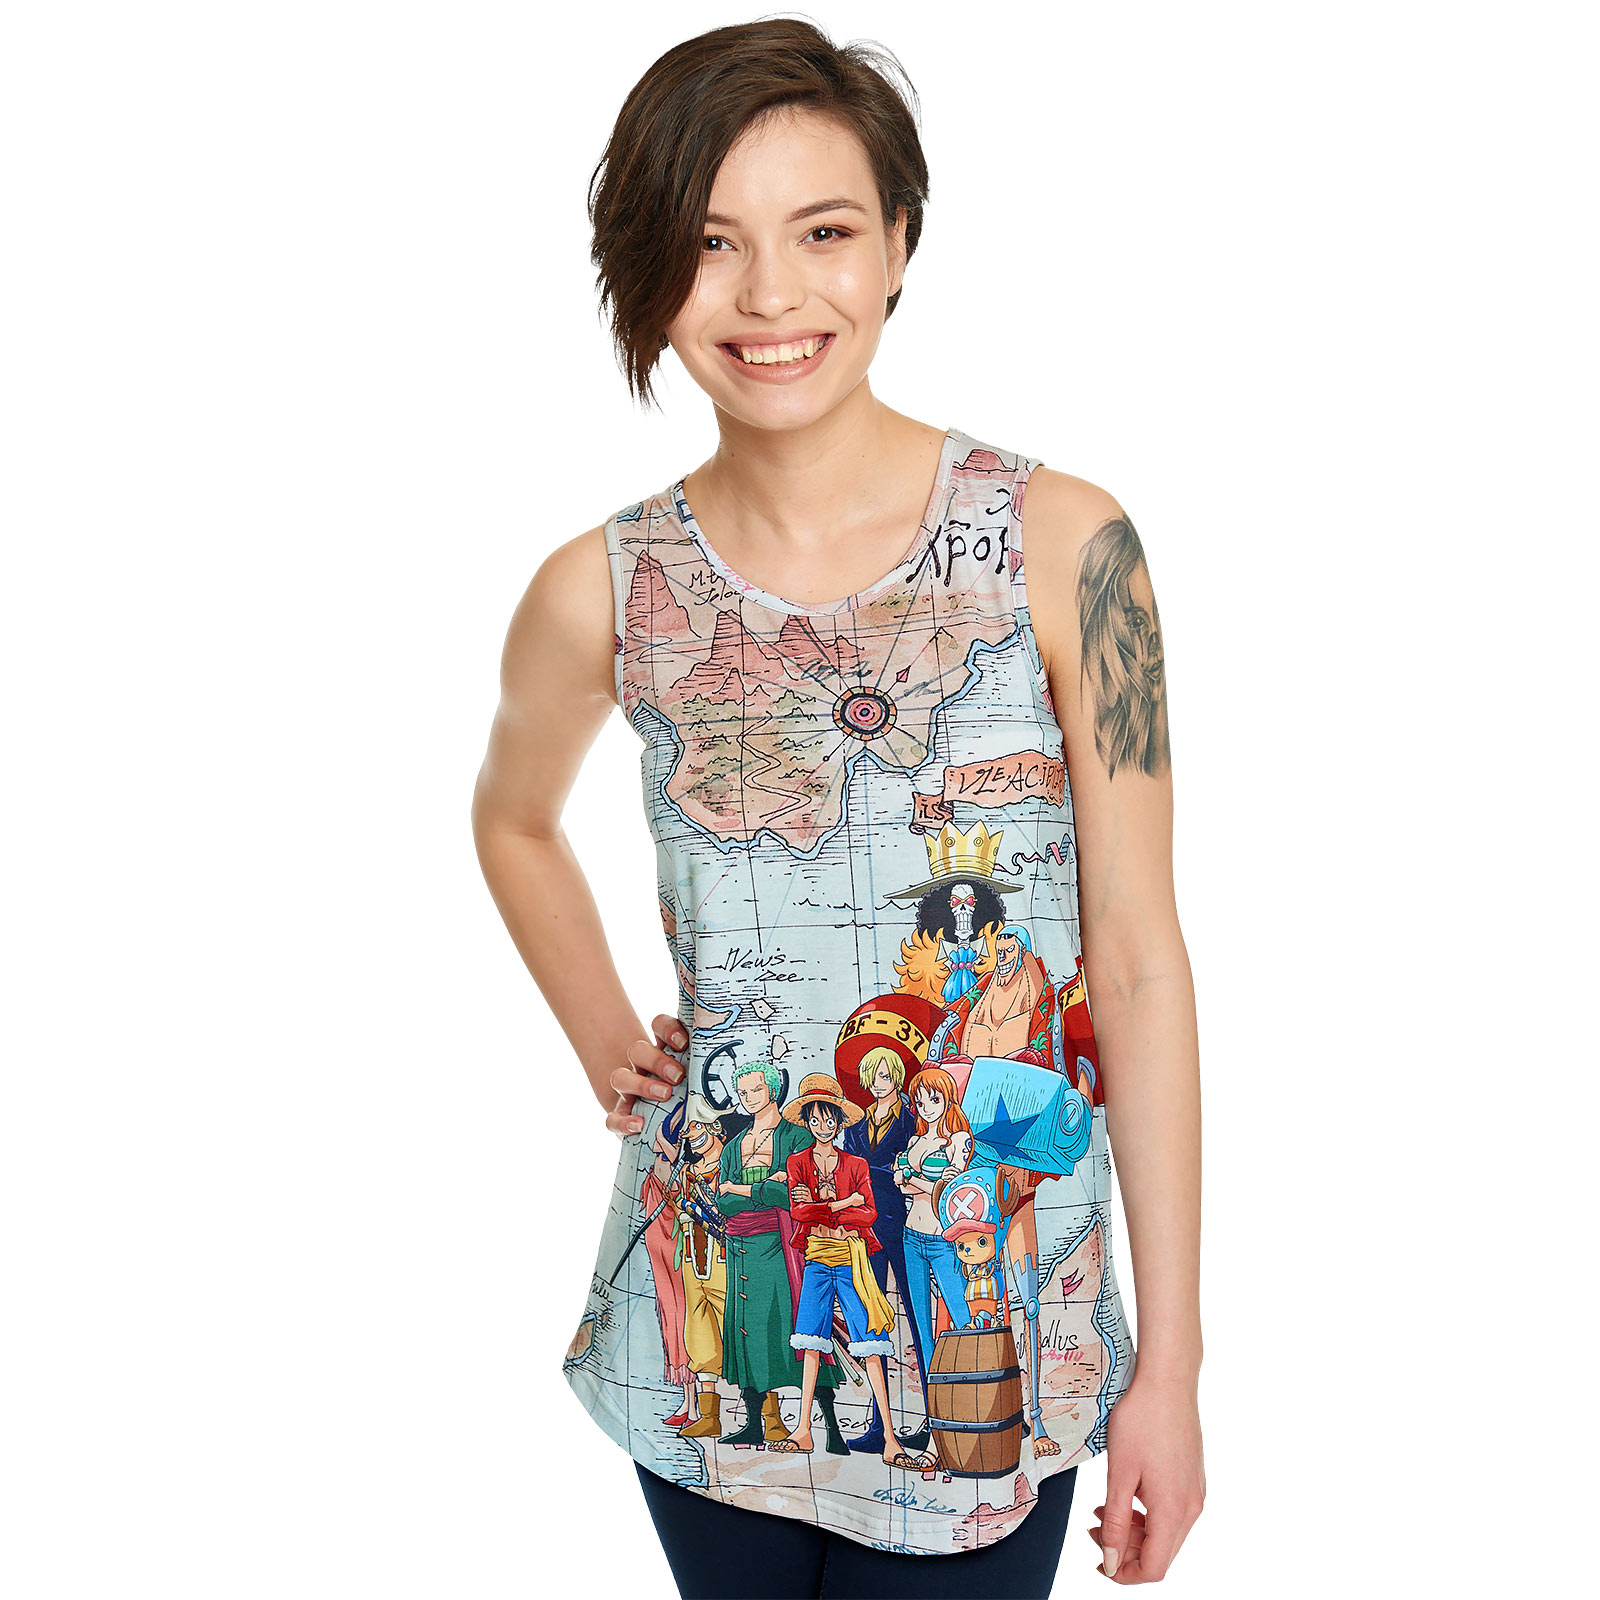 One Piece - East Blue Map Tank Top Loose Fit